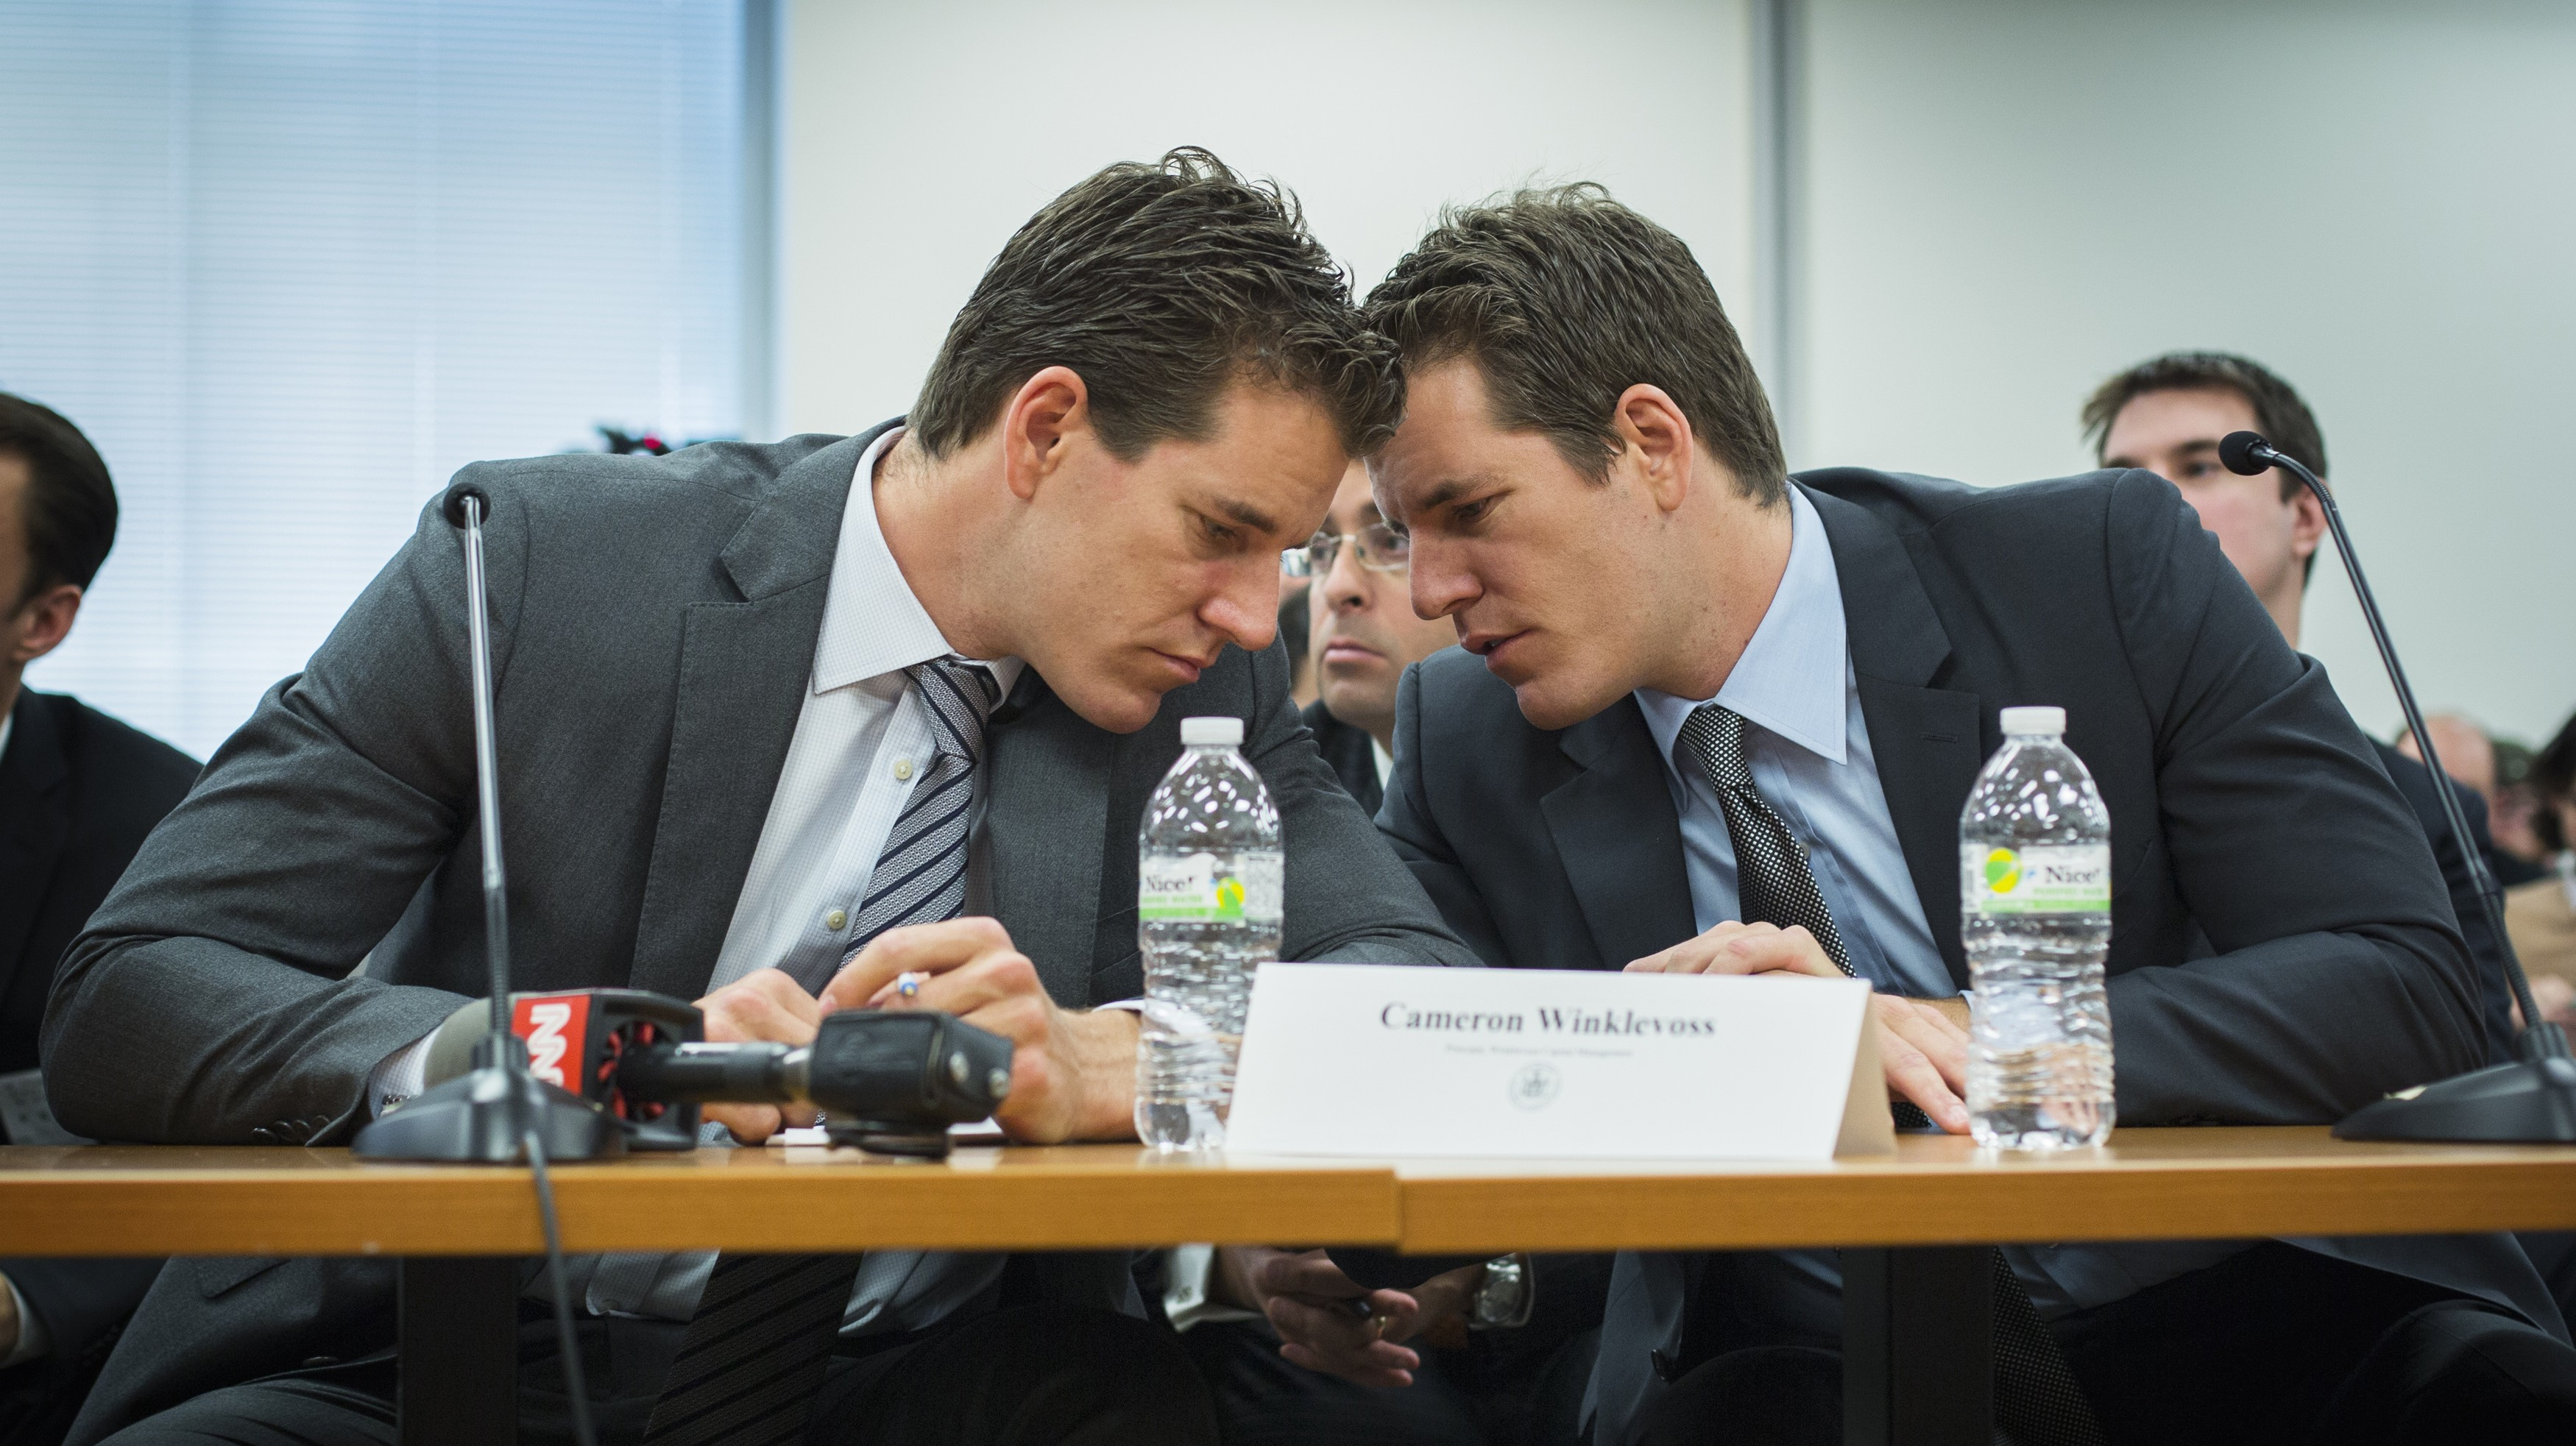 A Nasdaq for Bitcoin: VICE News Interviews the Winklevoss Twins About the Future of Cryptocurrency